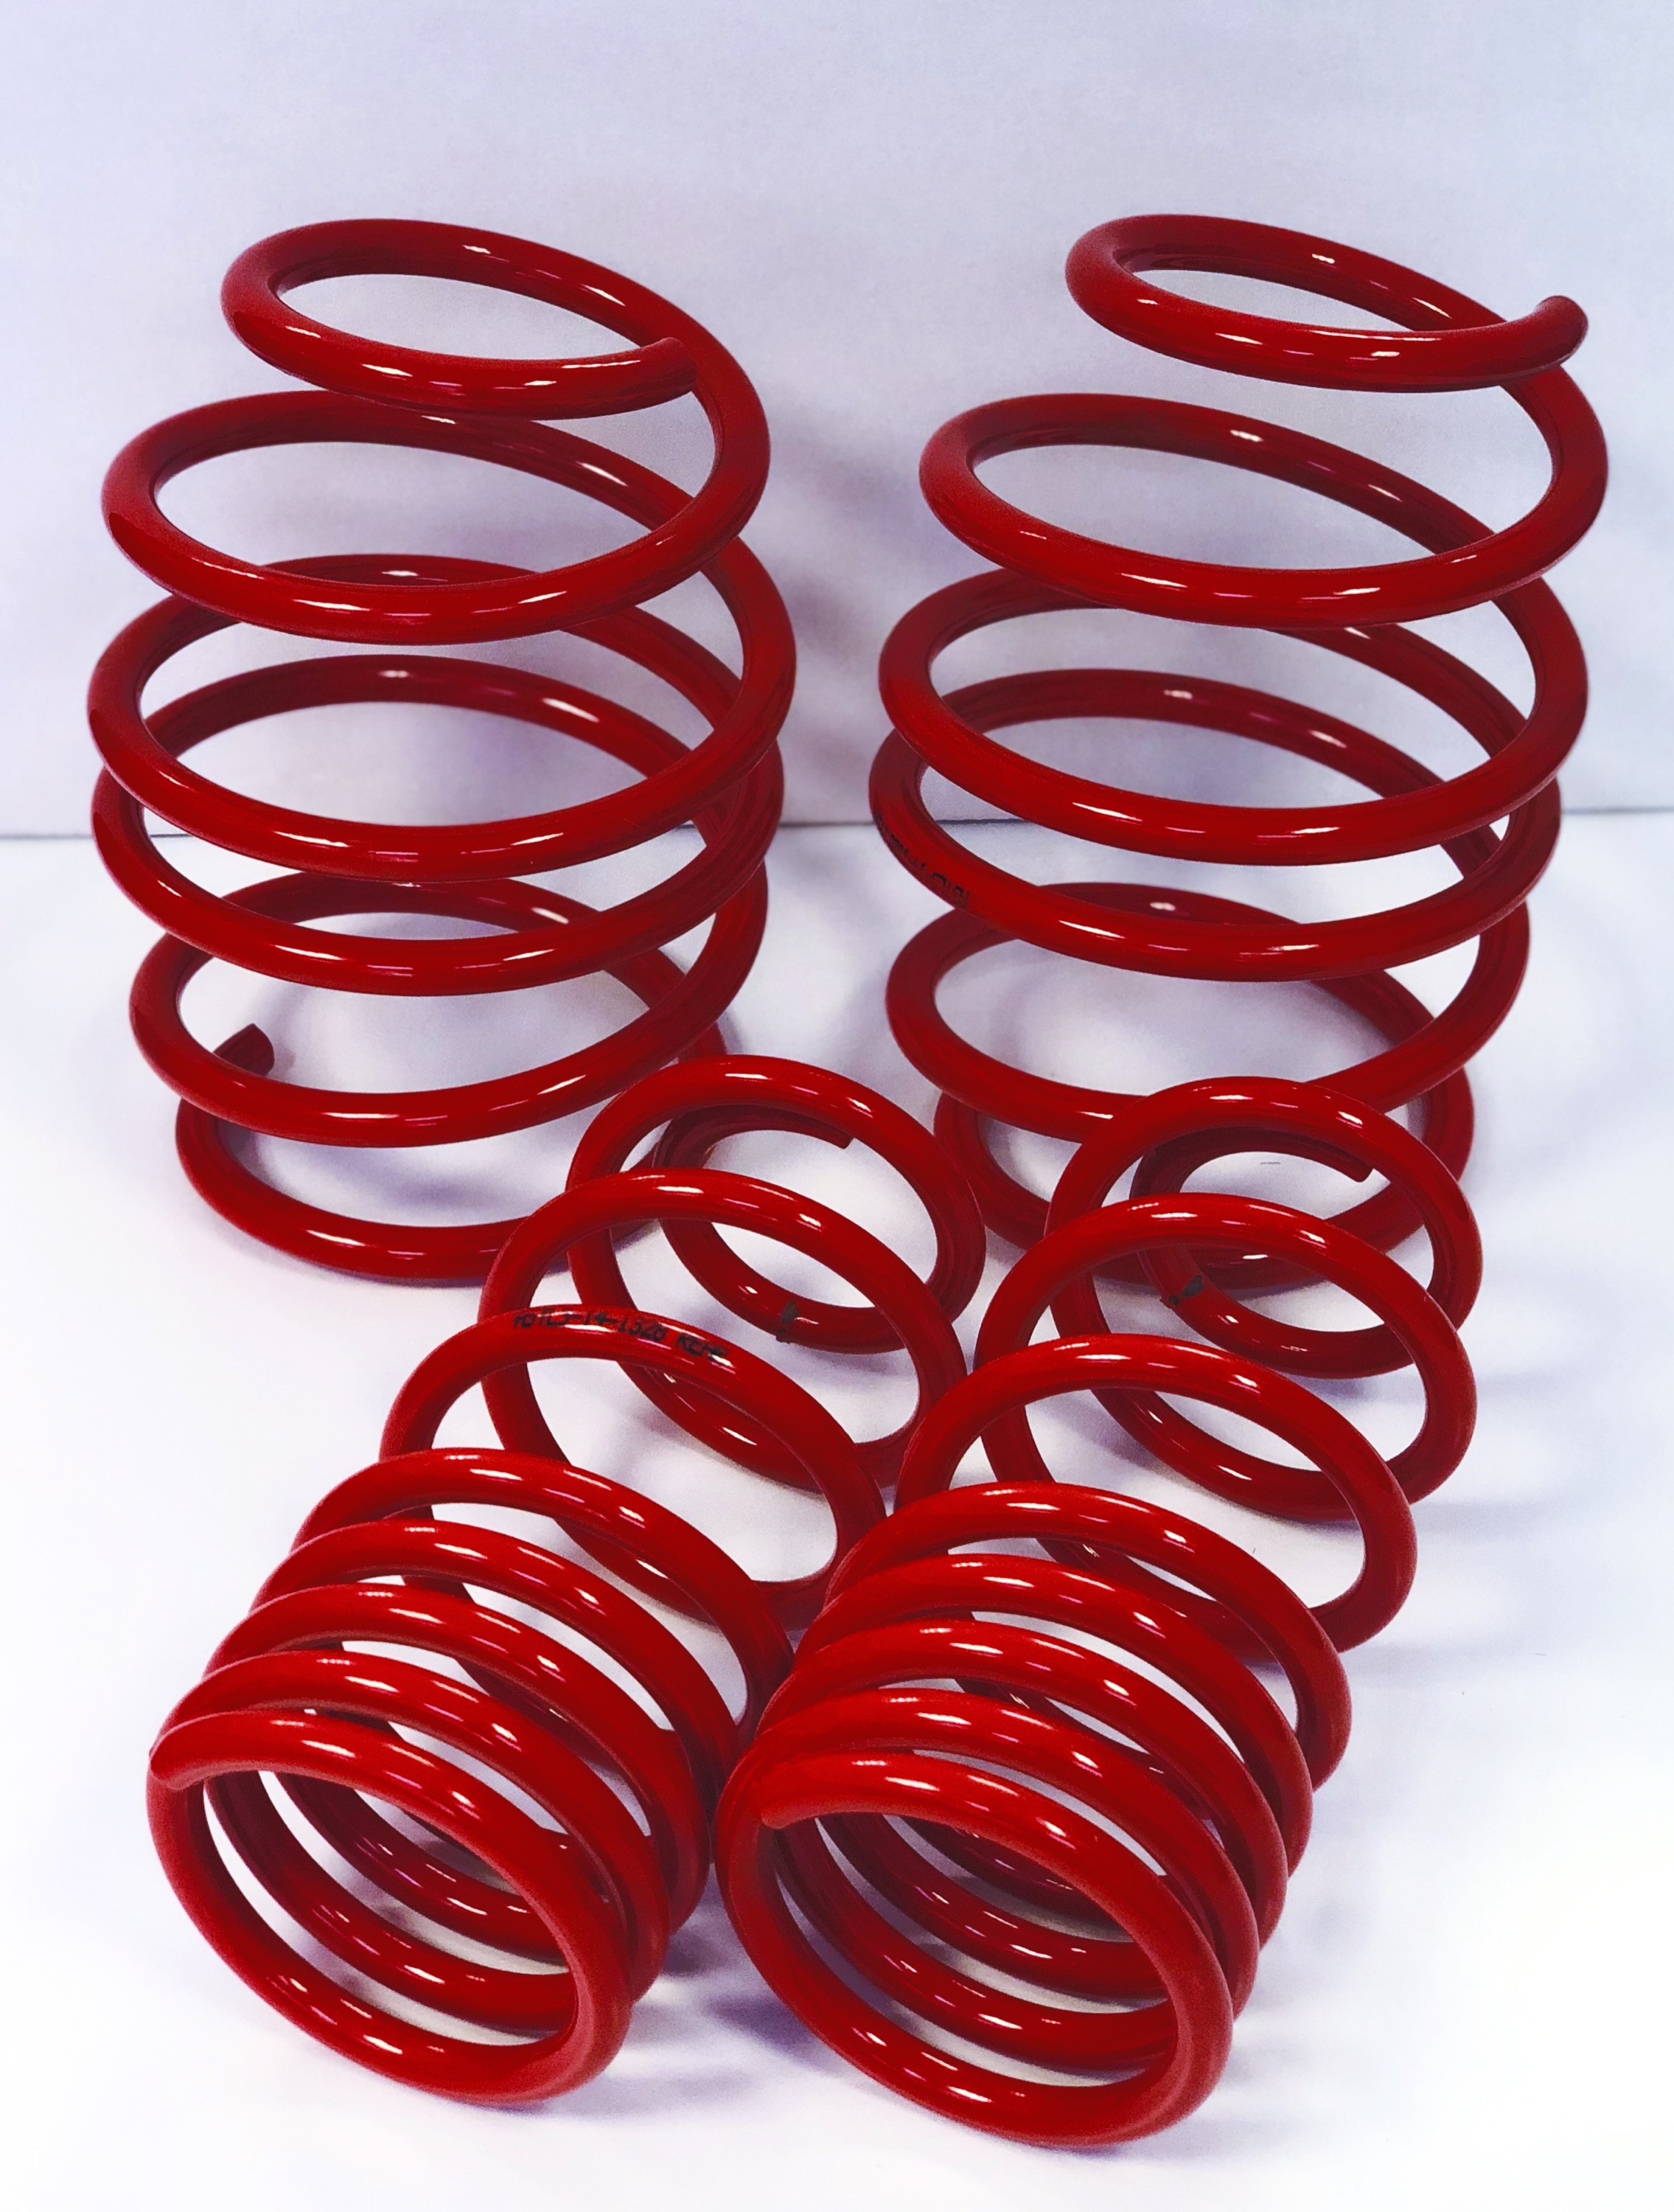 Volkswagen POLO/DERBY AST Suspension Lowering Springs 60MM